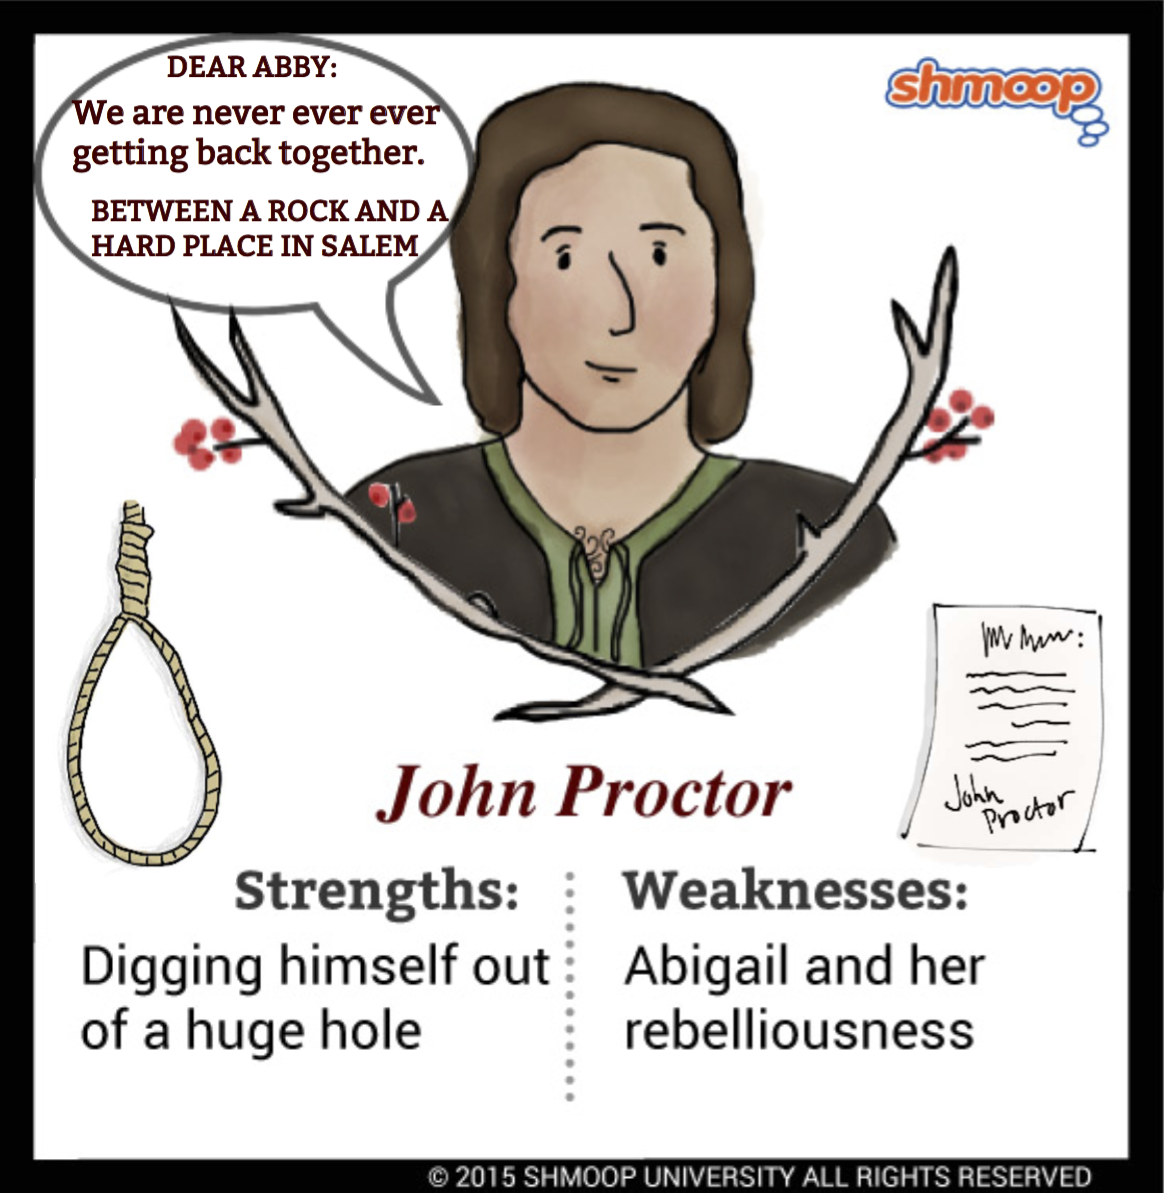 the crucible john proctor motivation The motivations in the crucible are different for each character and suit abigail arthur miller character motivations elizabeth proctor john proctor reverend hale.